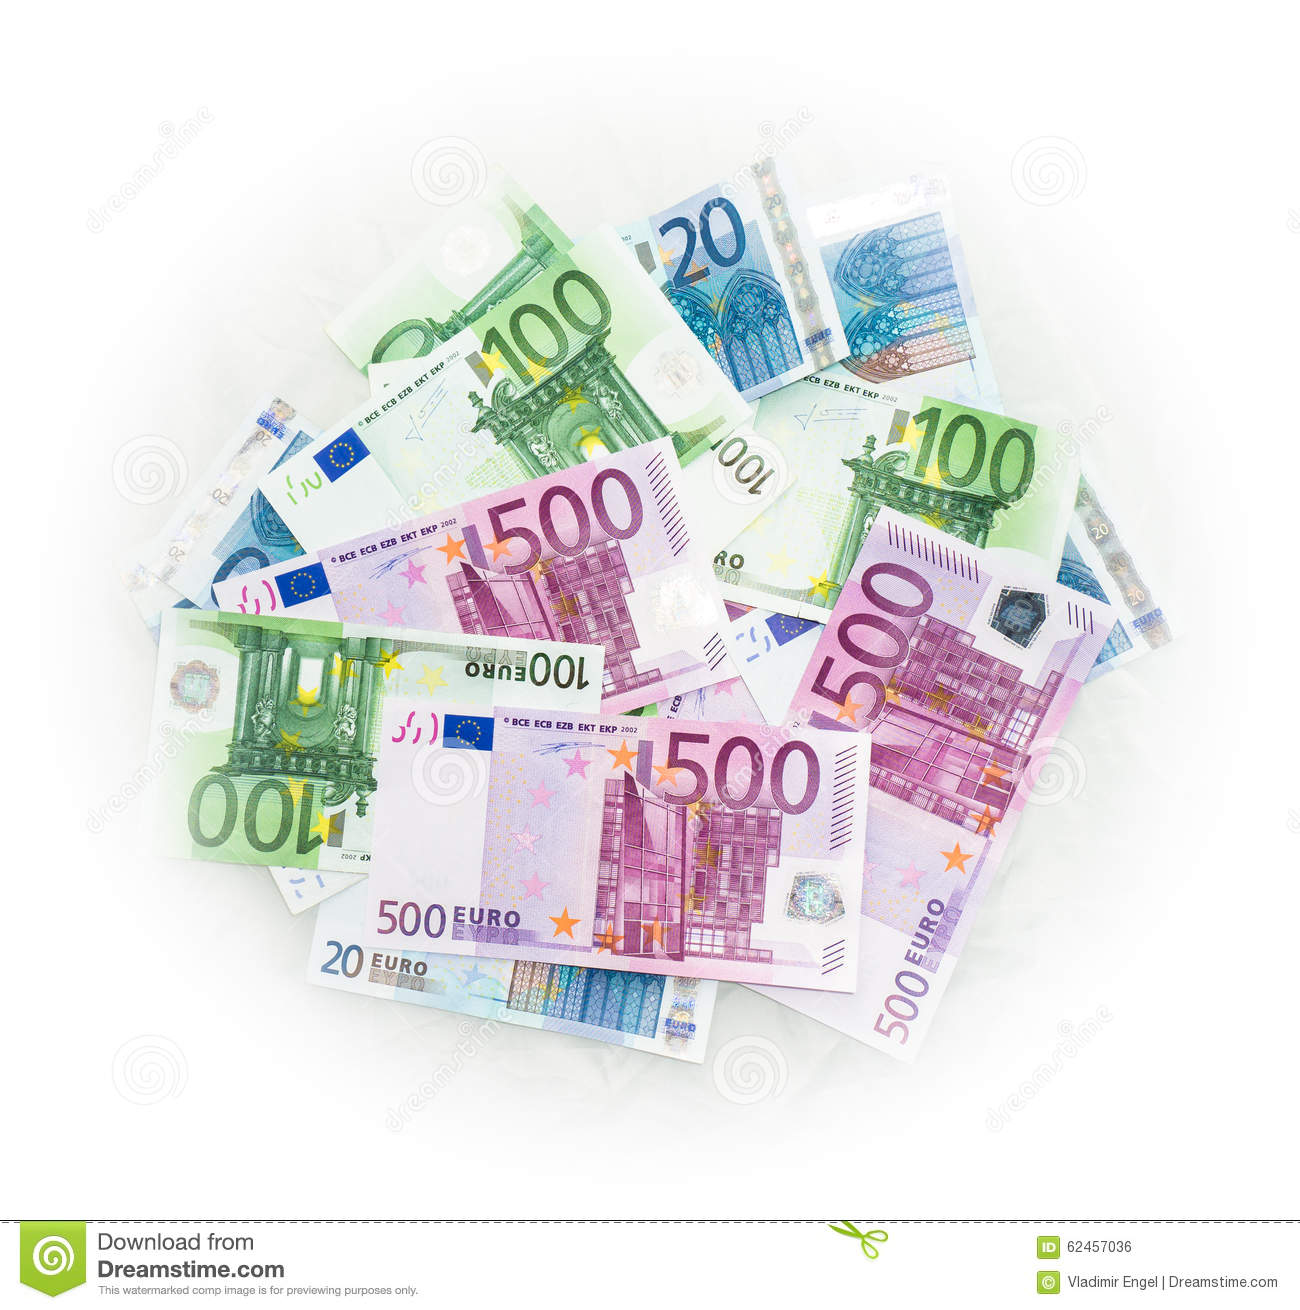 Credit Union Euro Rate